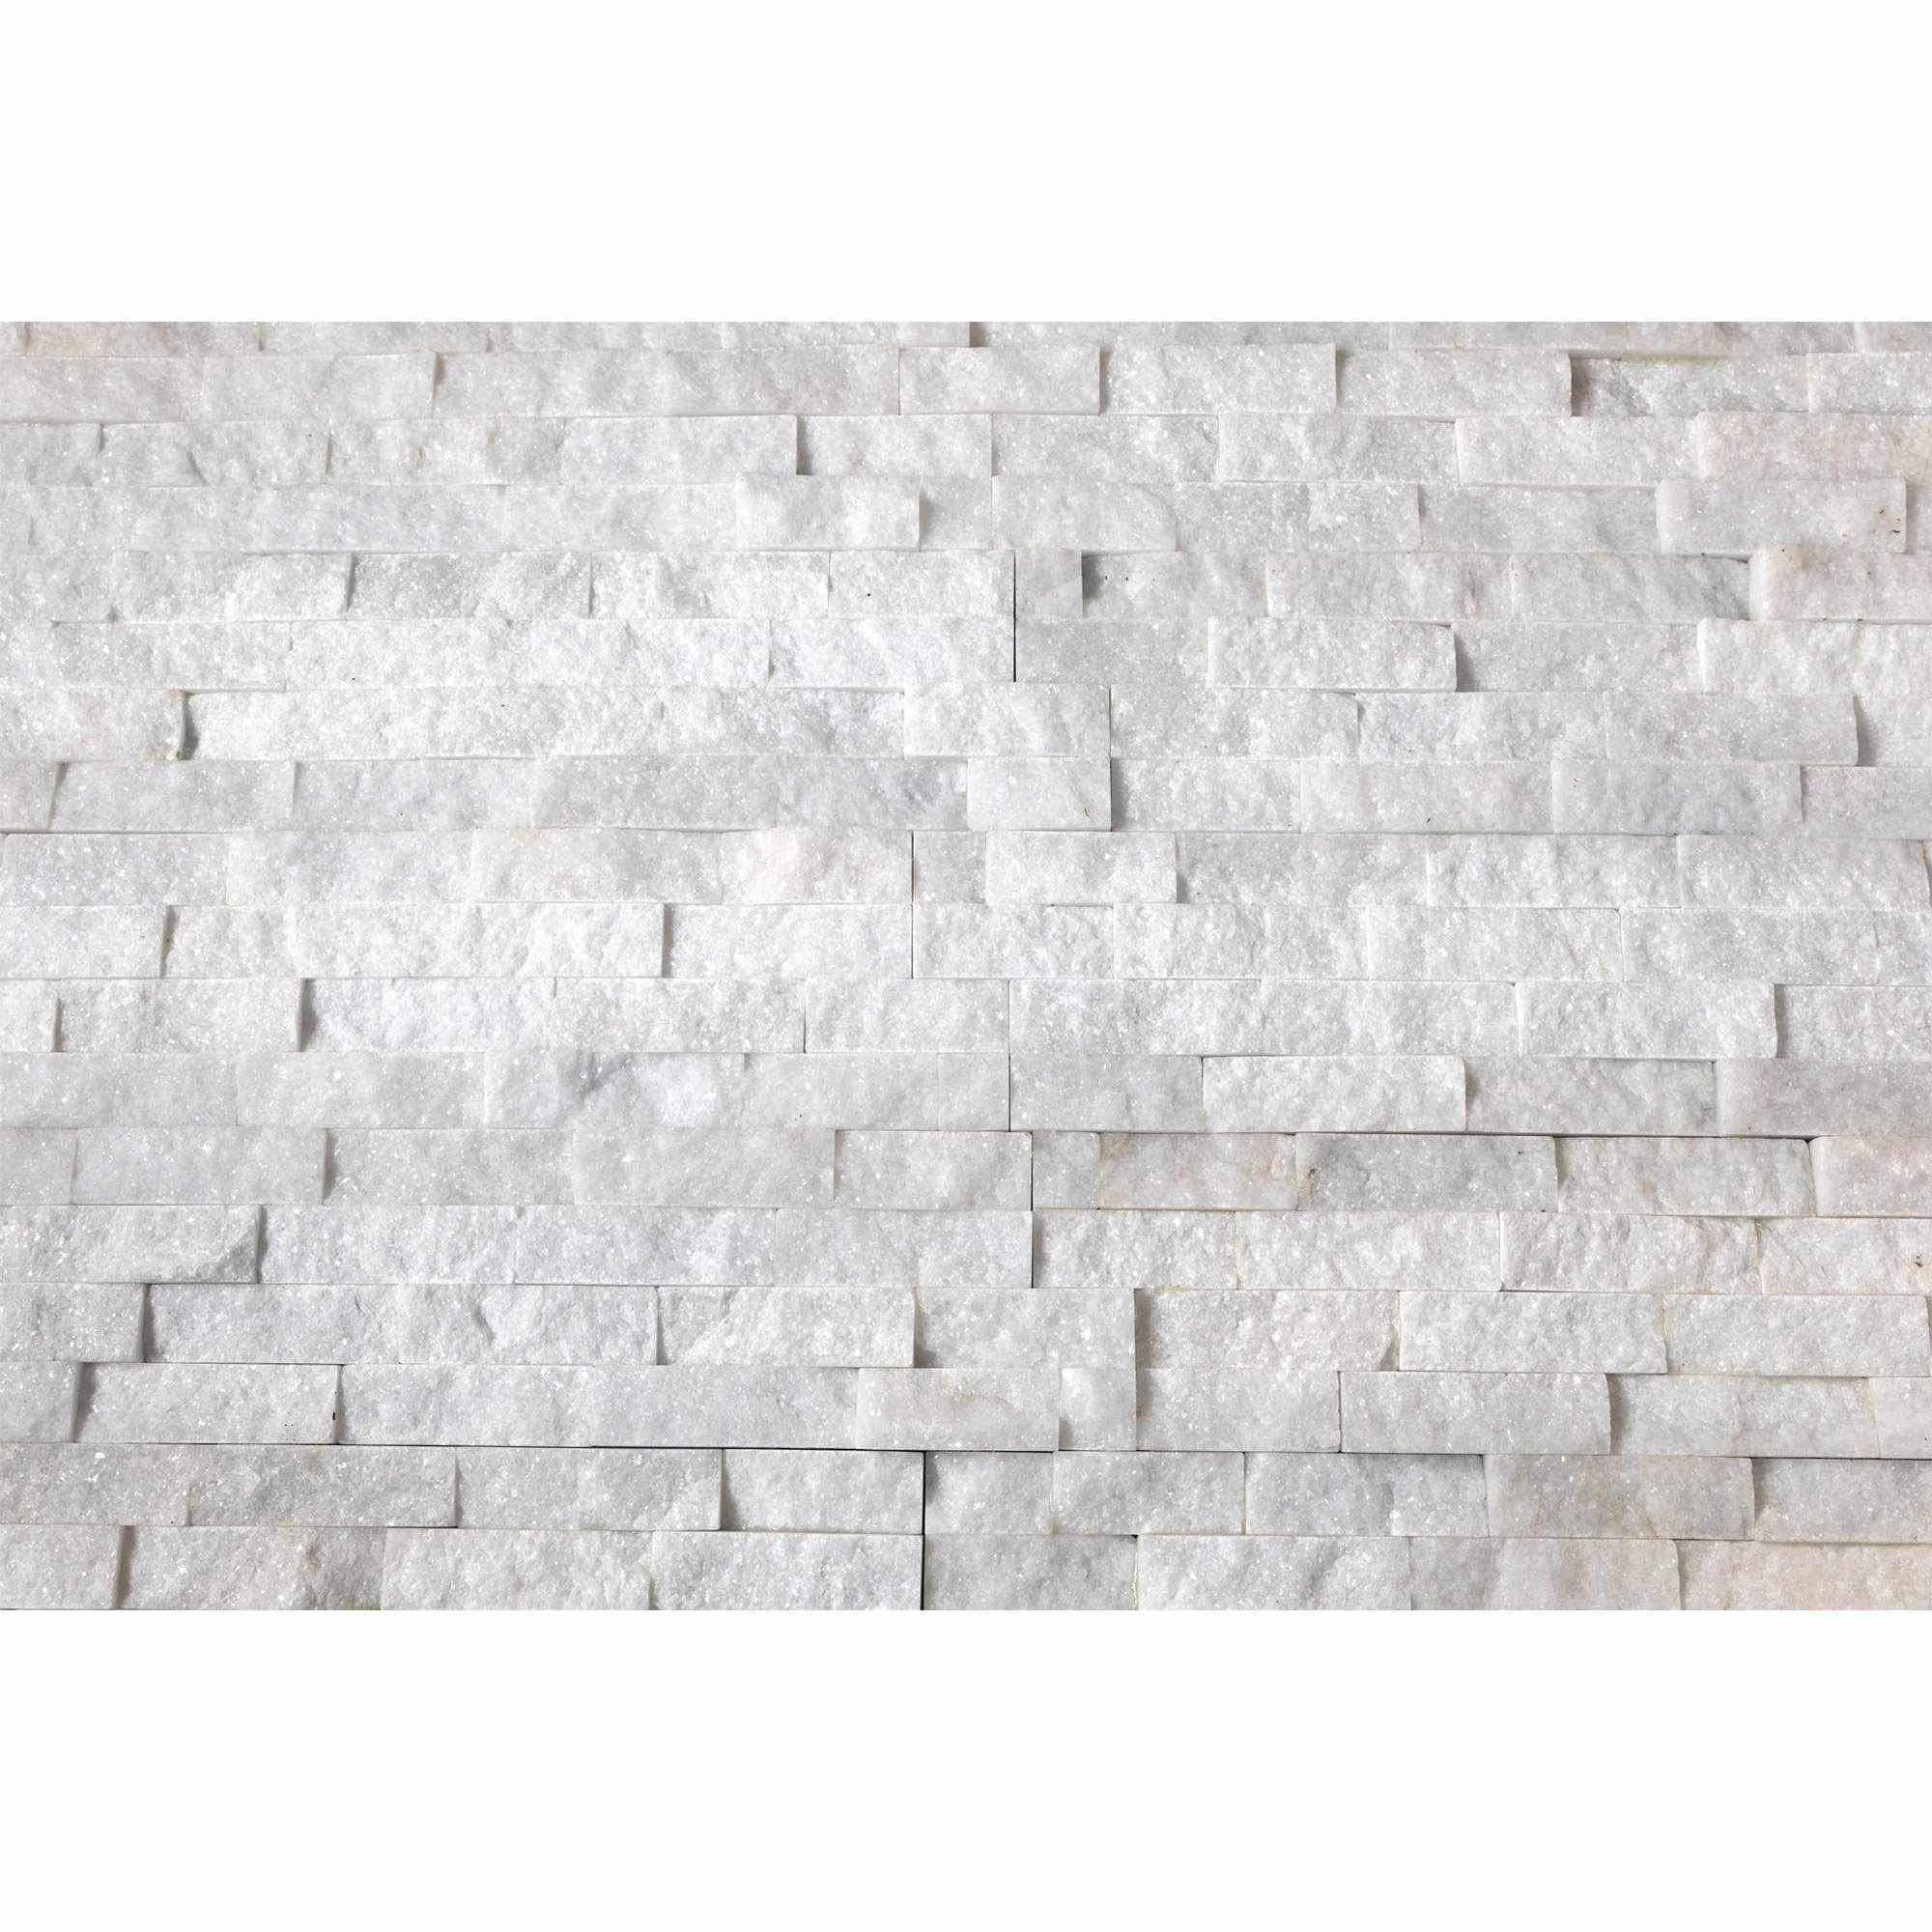 Natural Stacked Stone Feature Wall Cladding Panels - Crystal White-Wall Cladding-Stone and Rock